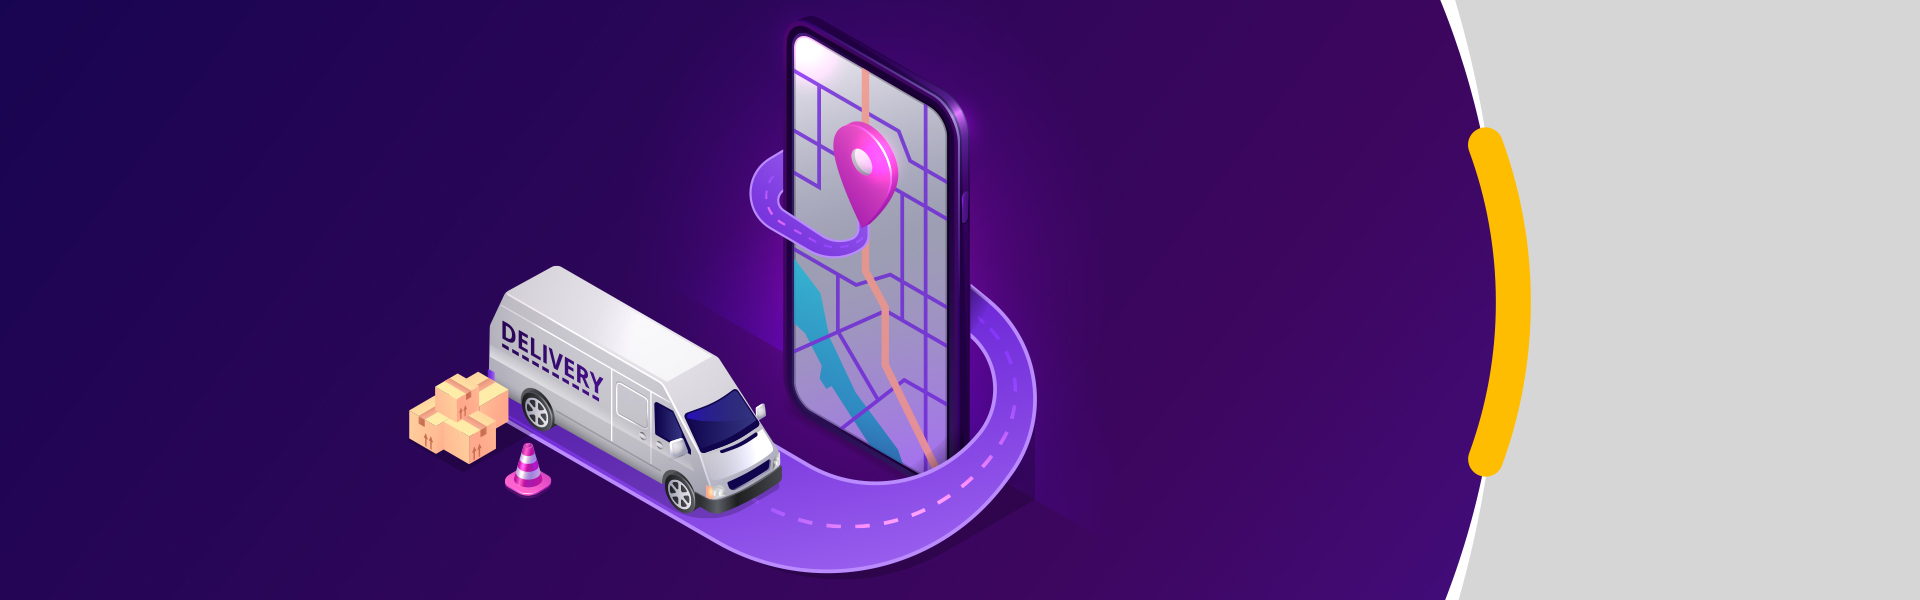 8-Best-Transport-and-Logistics-App-Features_main-banner